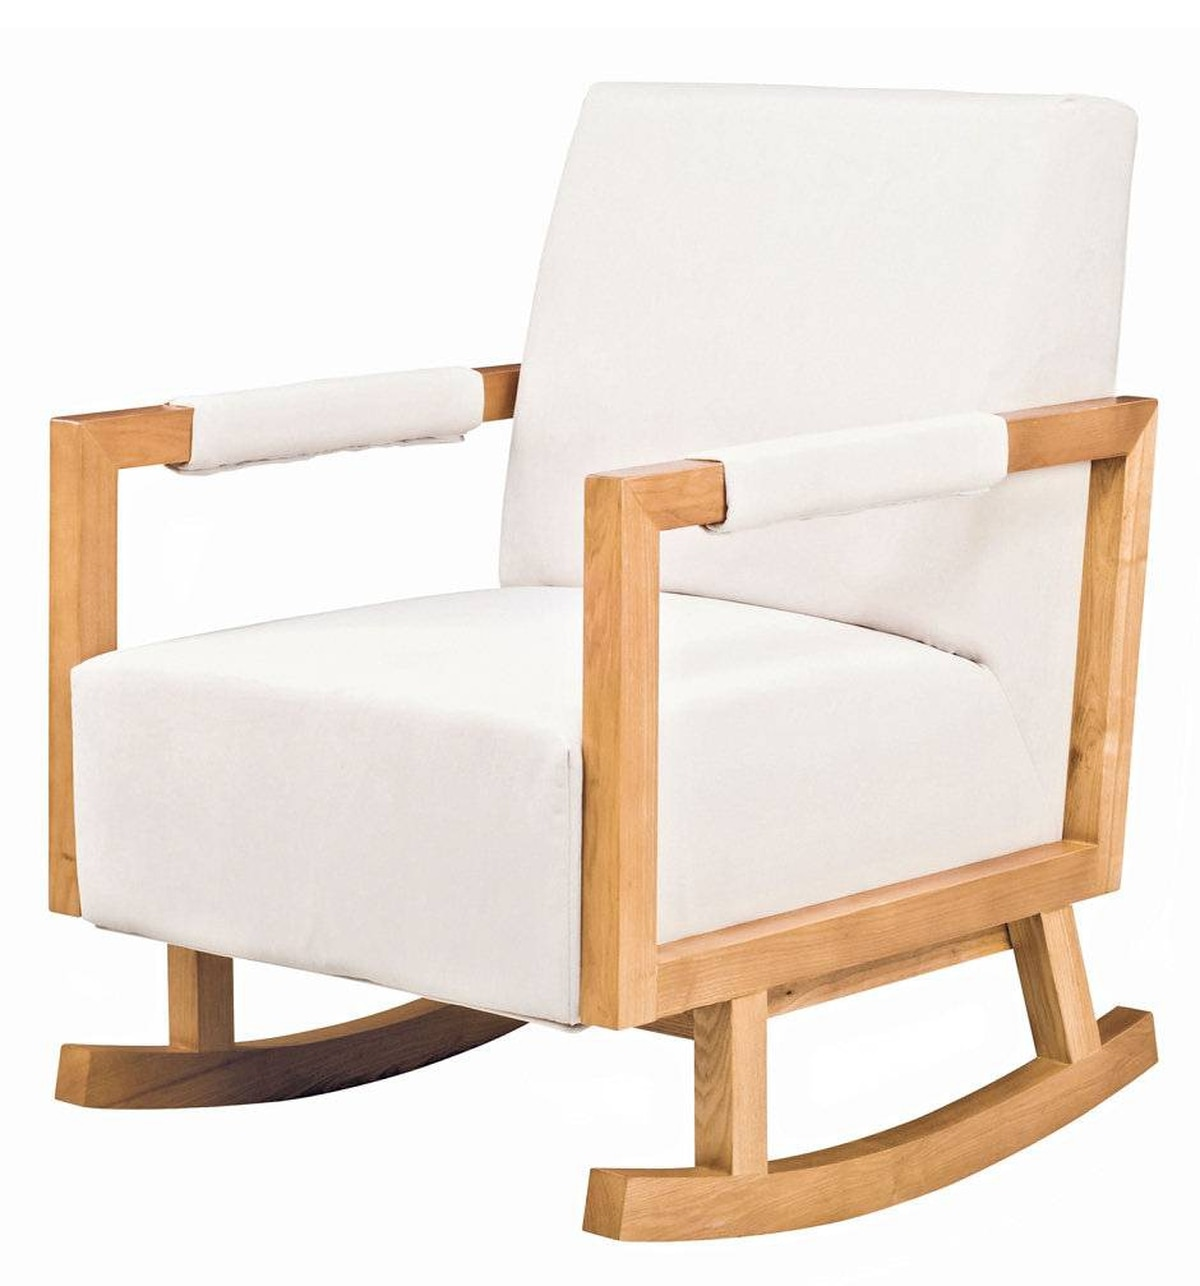 Nurseryworks' Bungalow Rocker is available in your choice of light ash or dark ash wood frame and cozy microsuede fabric upholstery in grey, brown or white. $899 at Ella + Elliot (www.ellaandelliot.com).